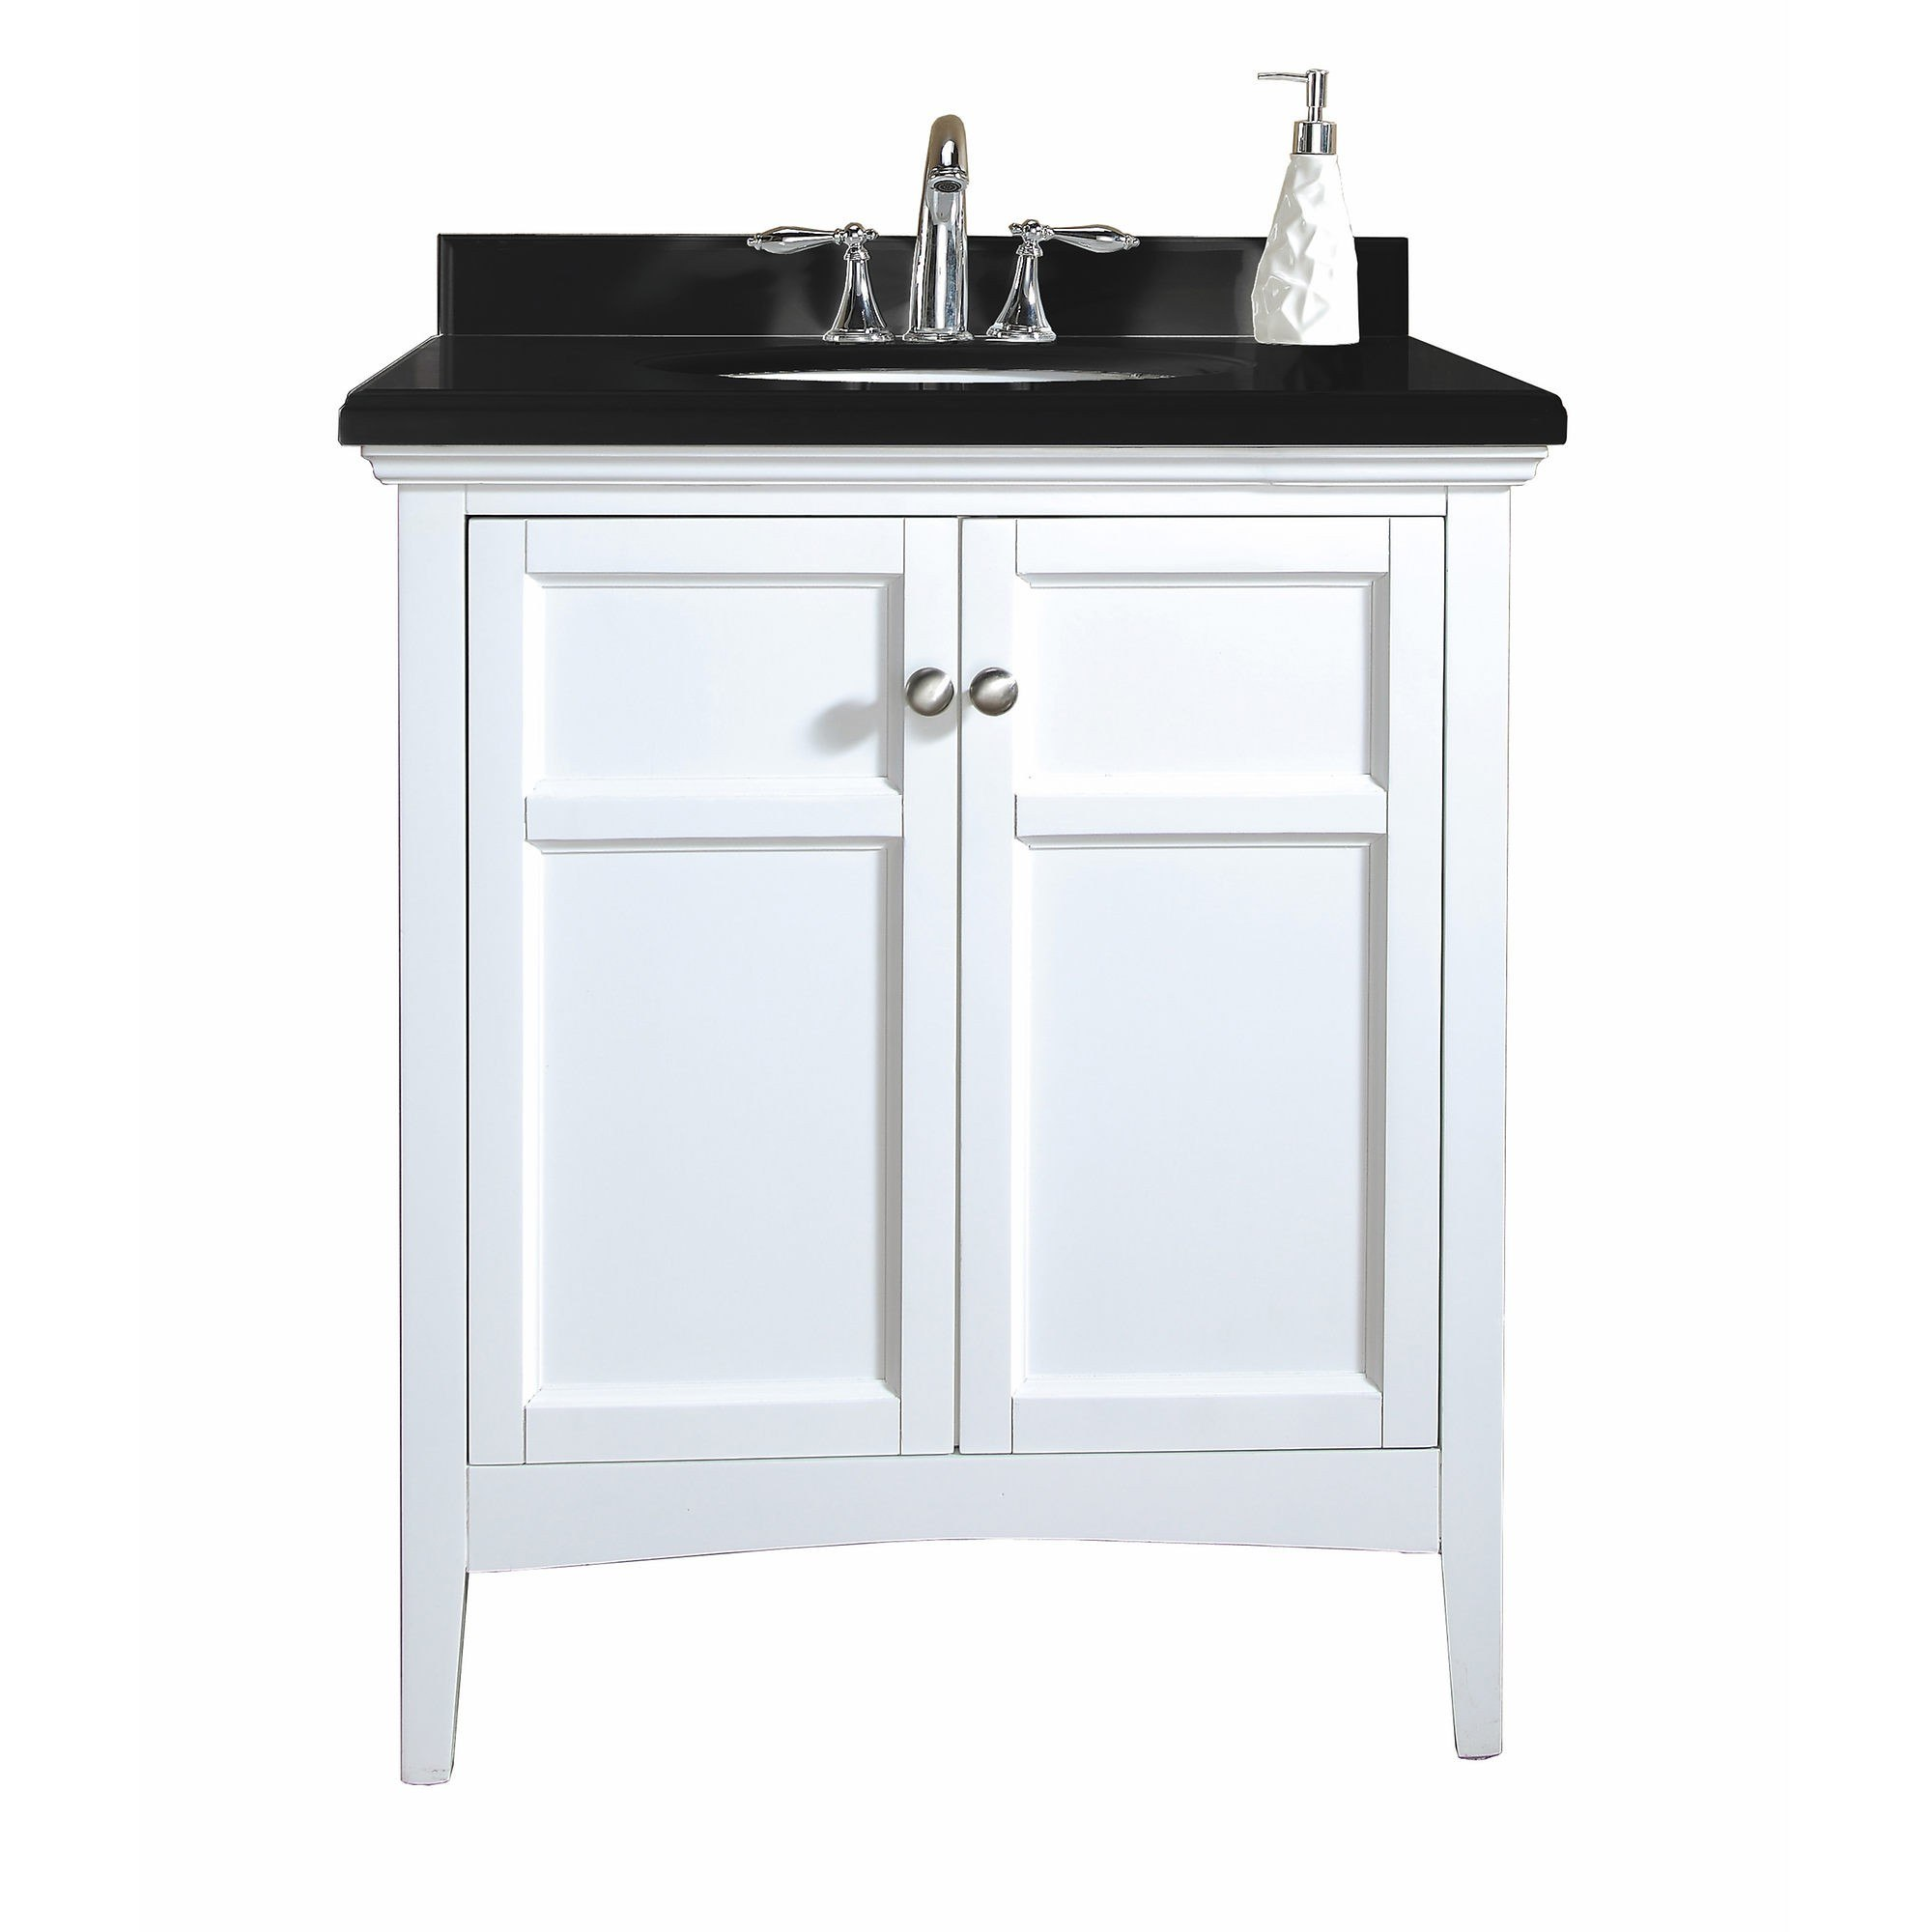 Ove Decor 15vva Camp30 000af Campo 30 Inch Vanity In White